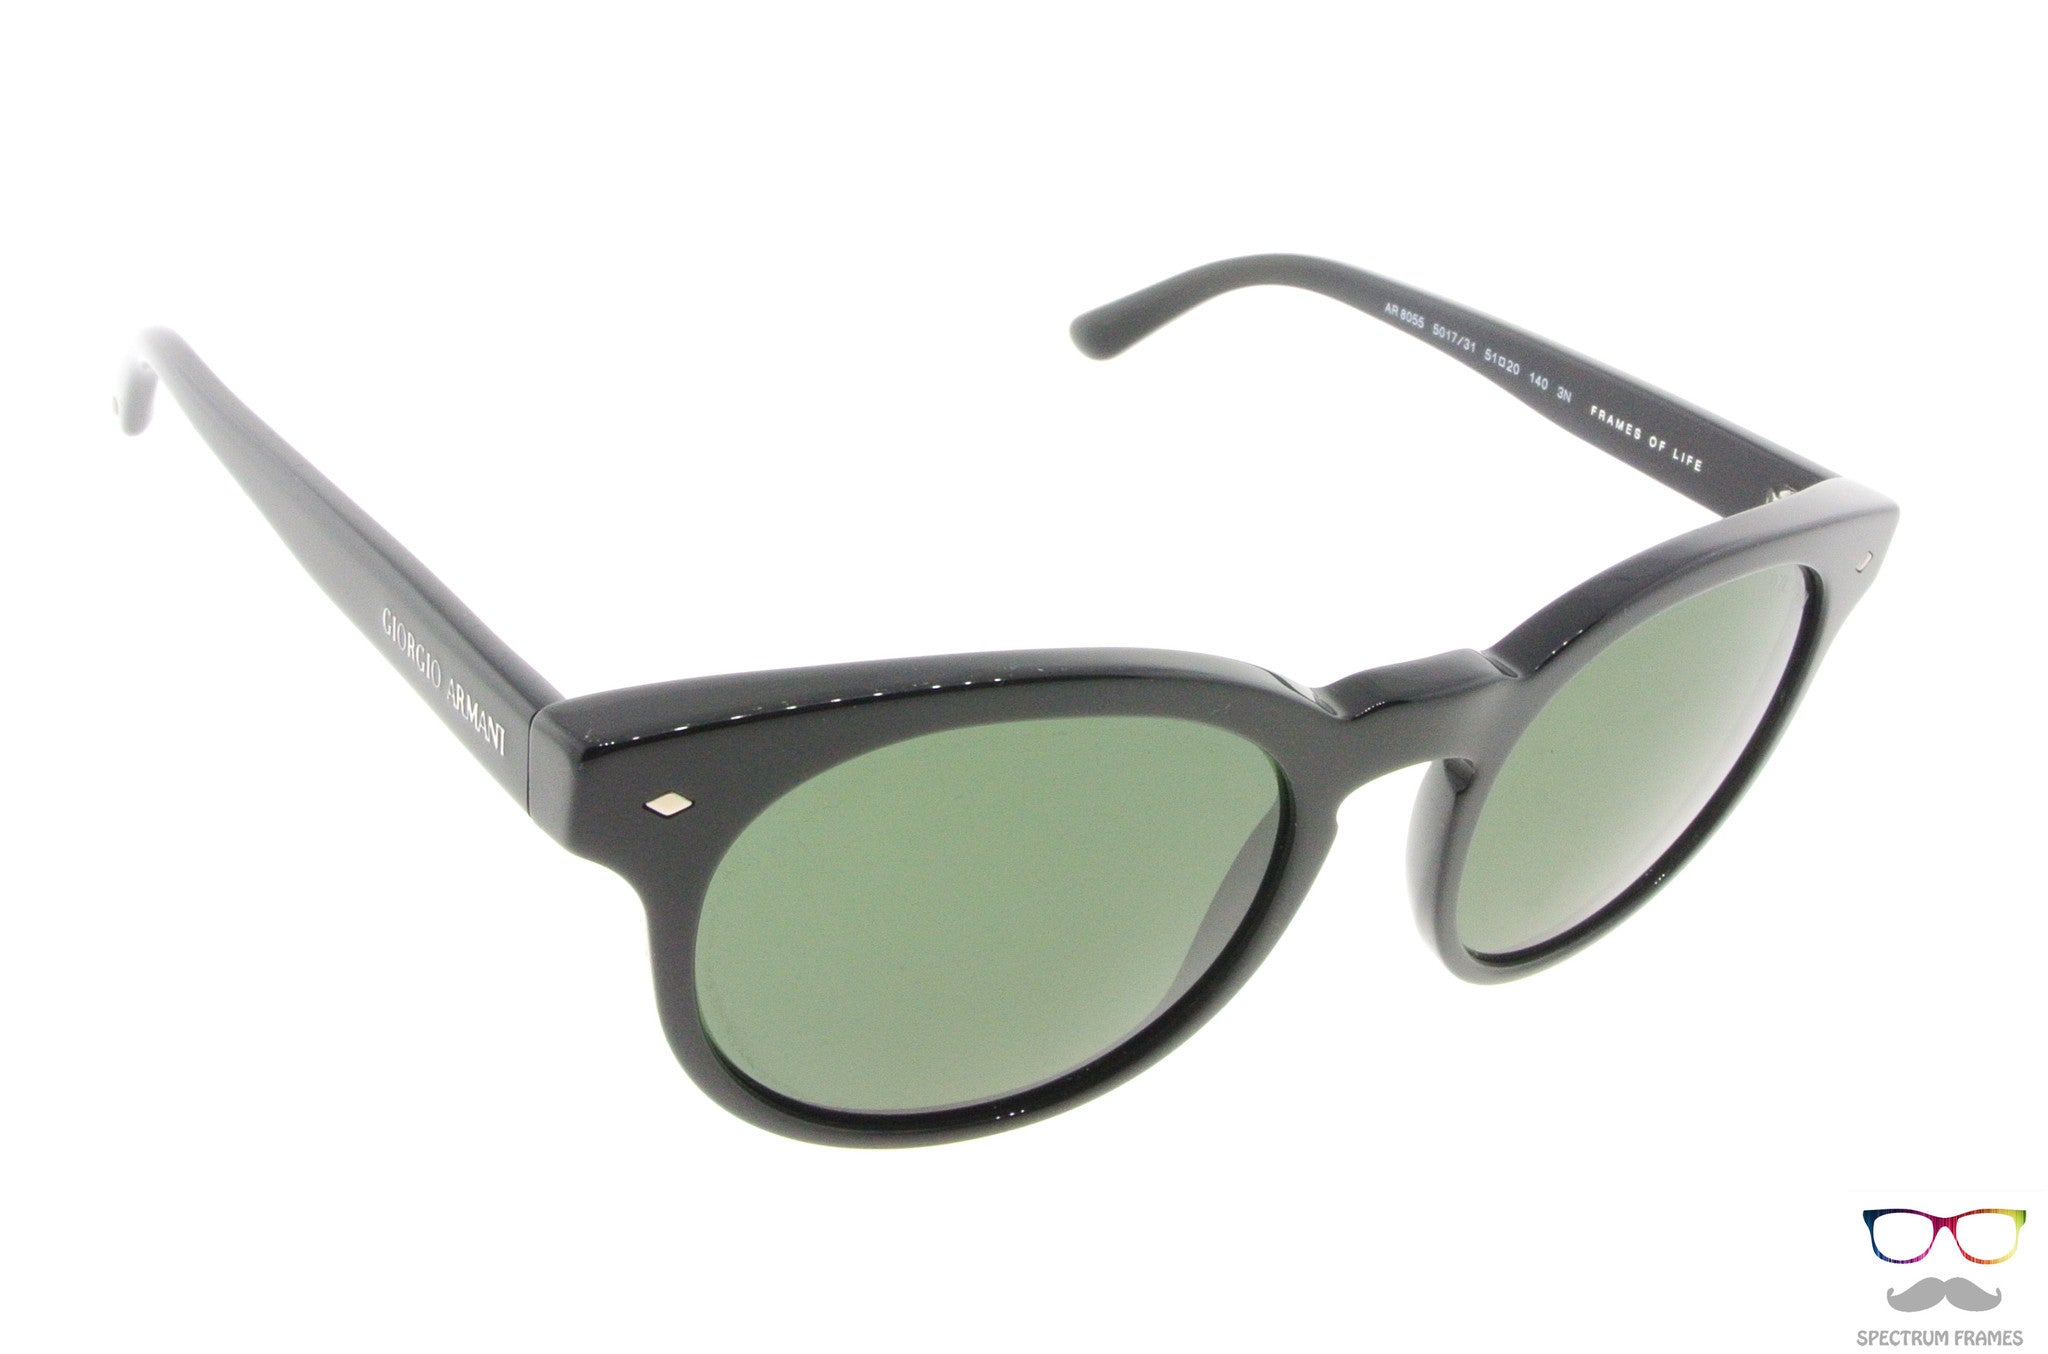 094924c1503 ... Giorgio Armani Sunglasses Model 8055 501731 Black with Green Lenses ...